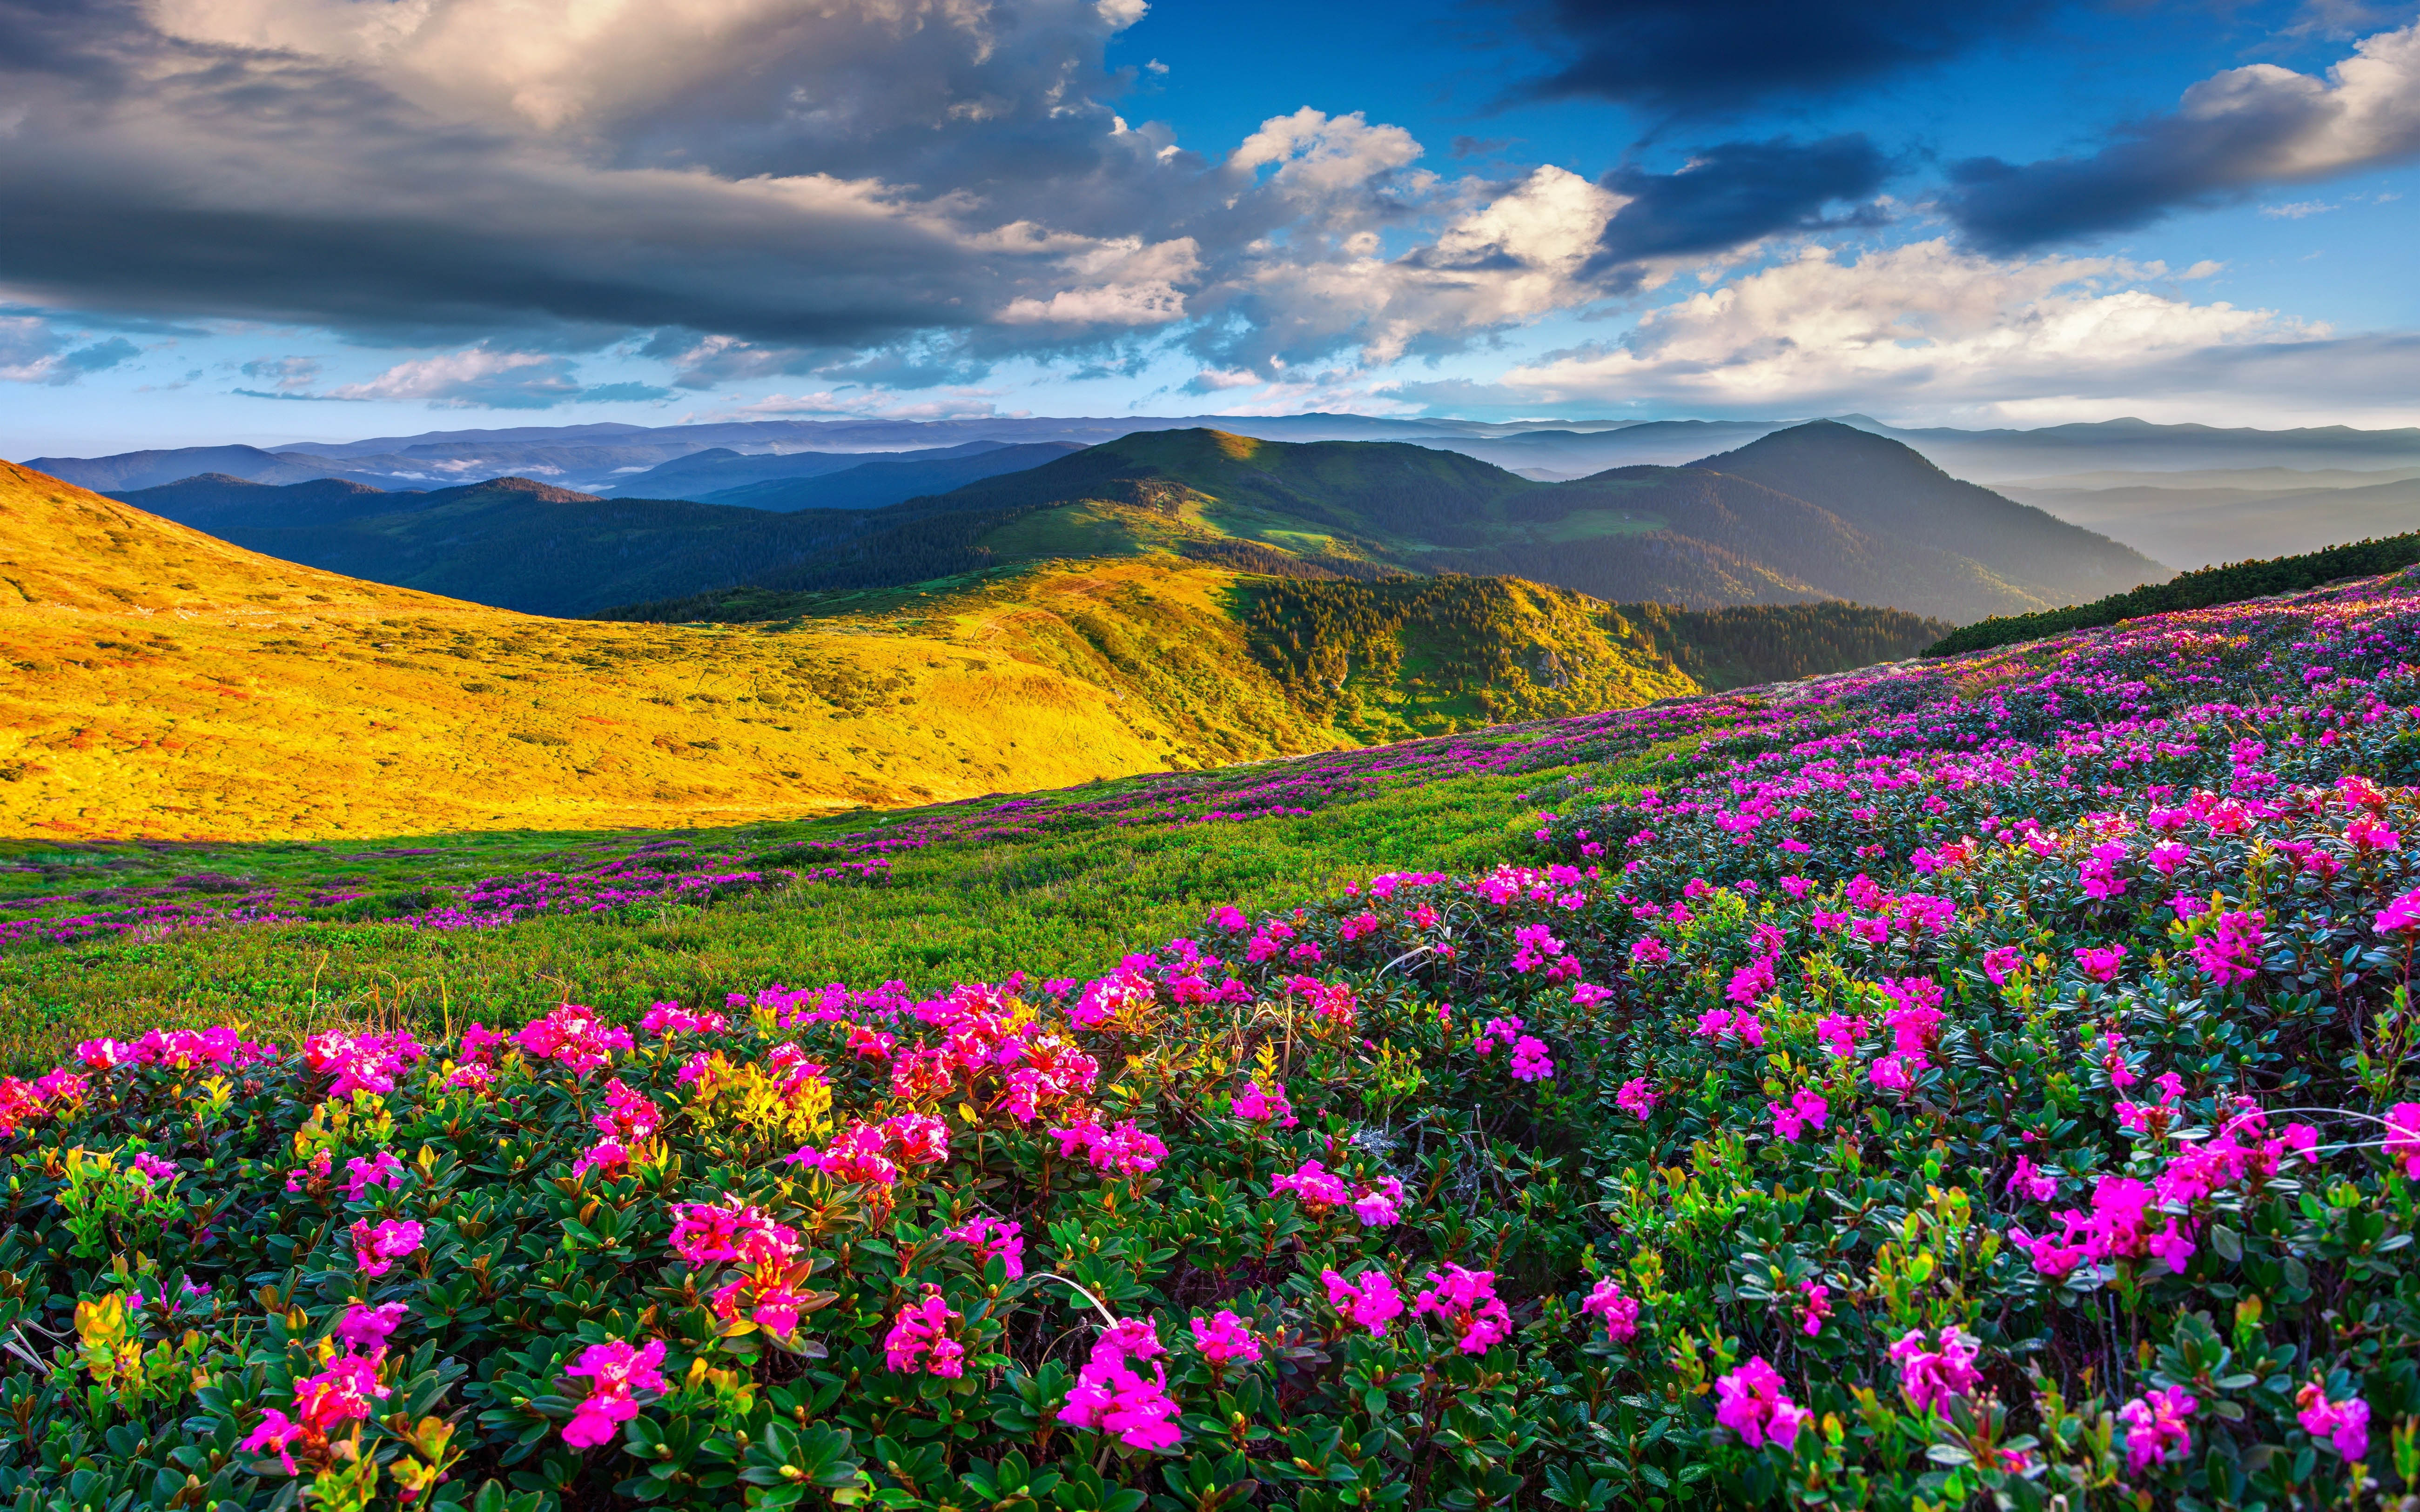 Free Fall Foliage Wallpaper Spring Mountain Landscape Flowers Purple Colored Hills